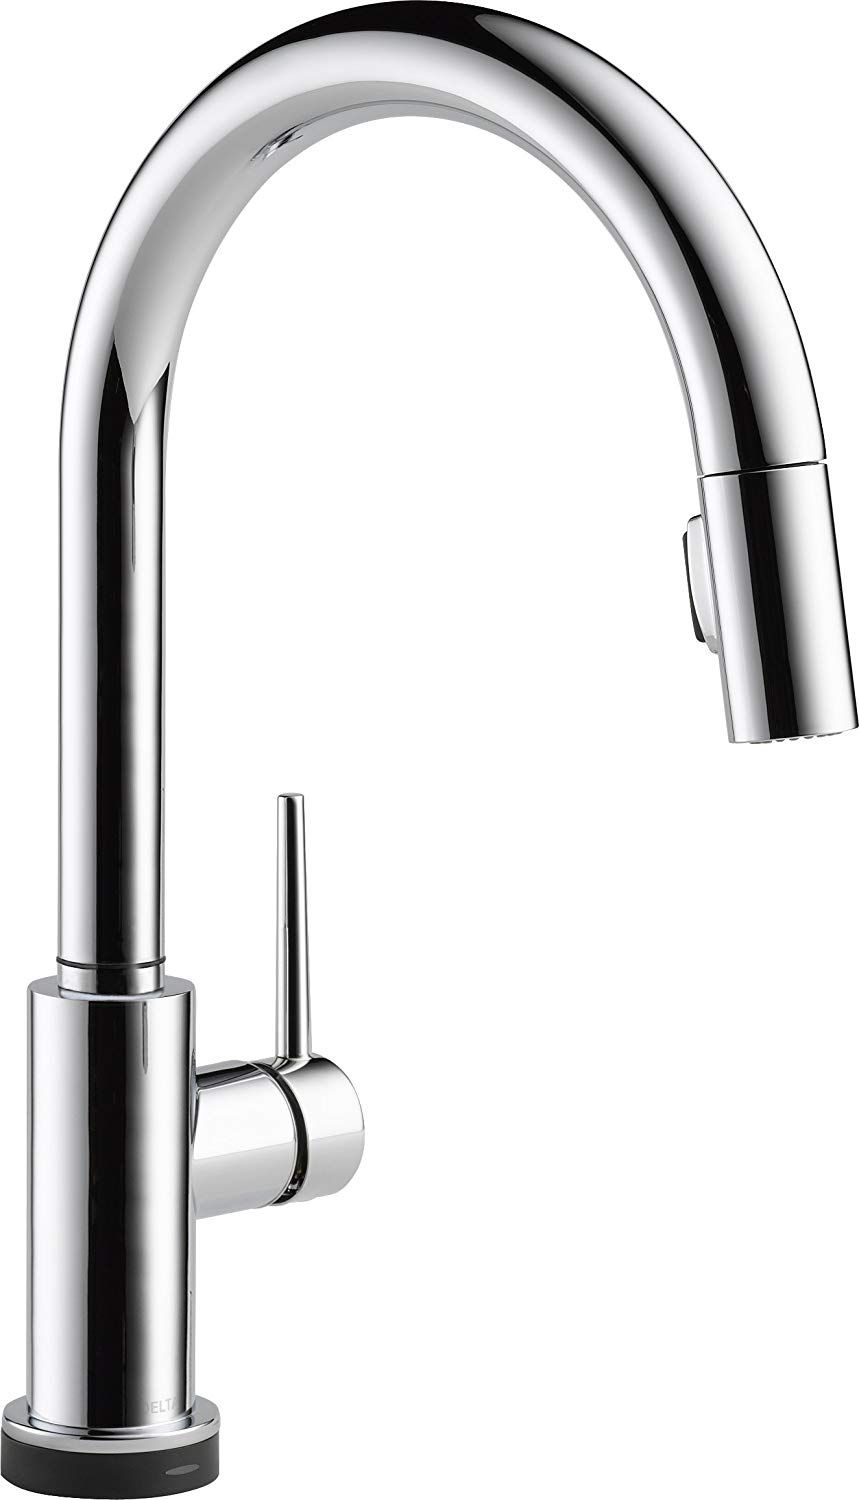 11 Delta Wall Mounted Kitchen Faucet, Delta Faucet 9159T DST ...